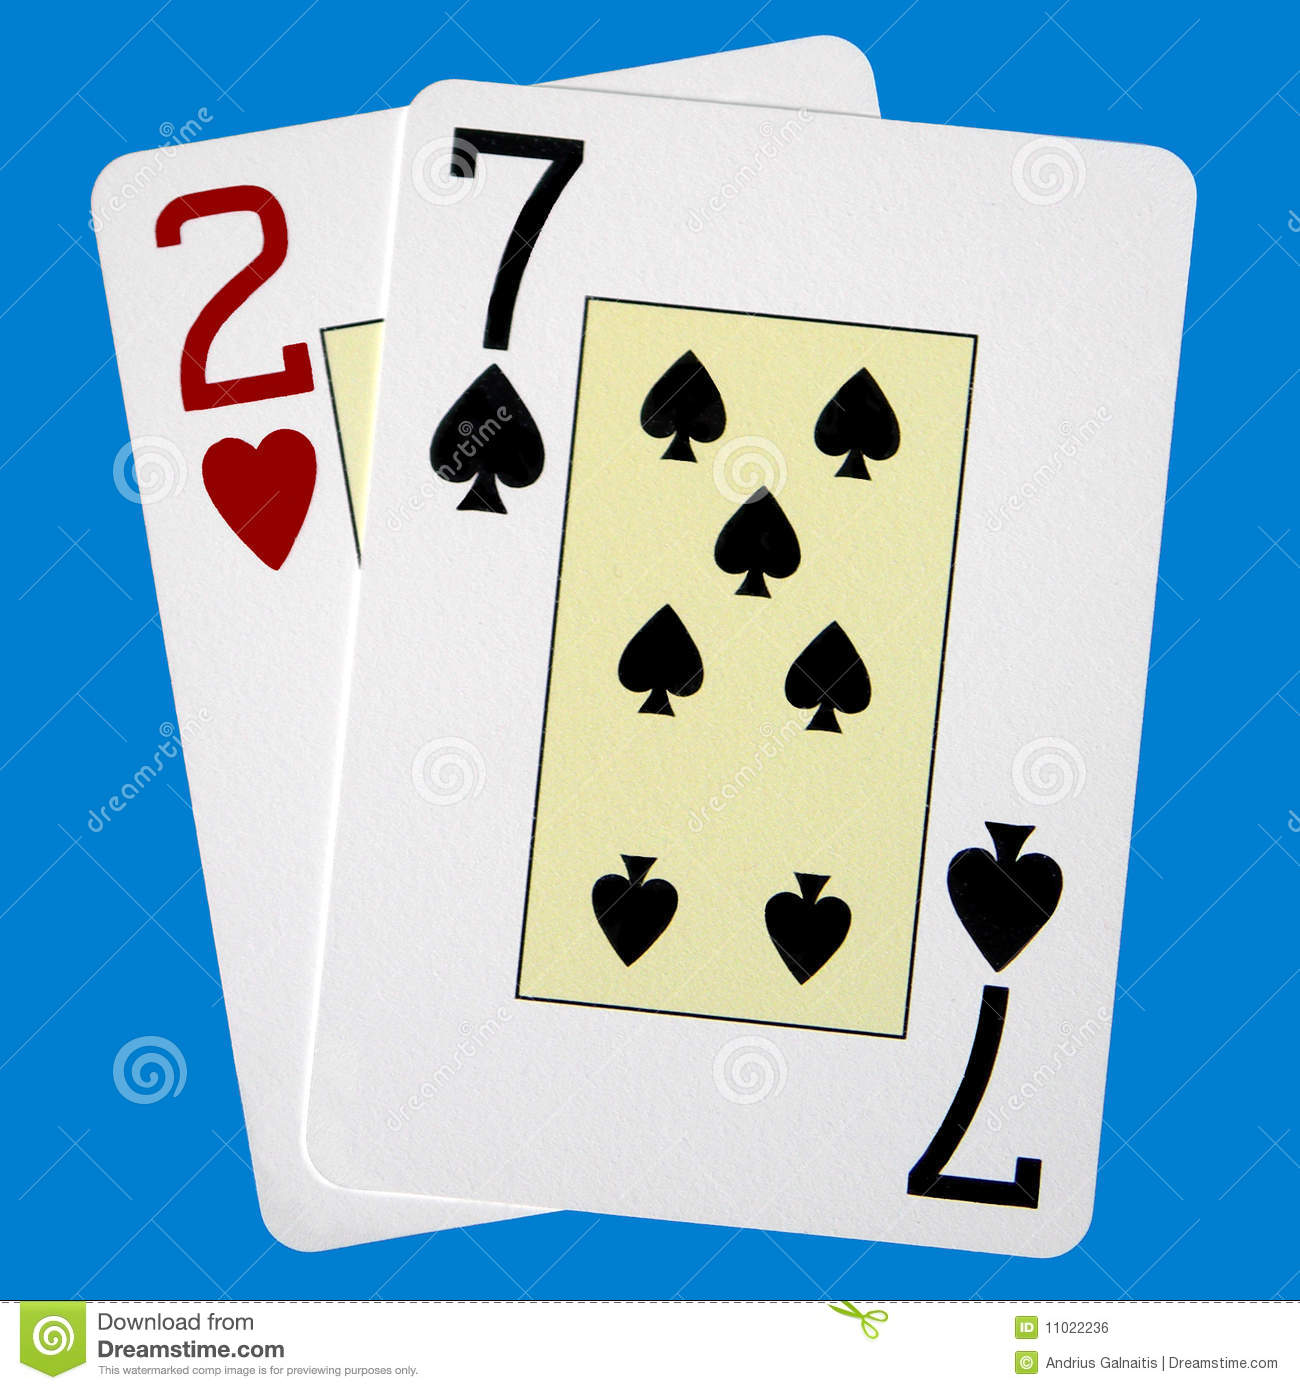 what are the worst poker hands